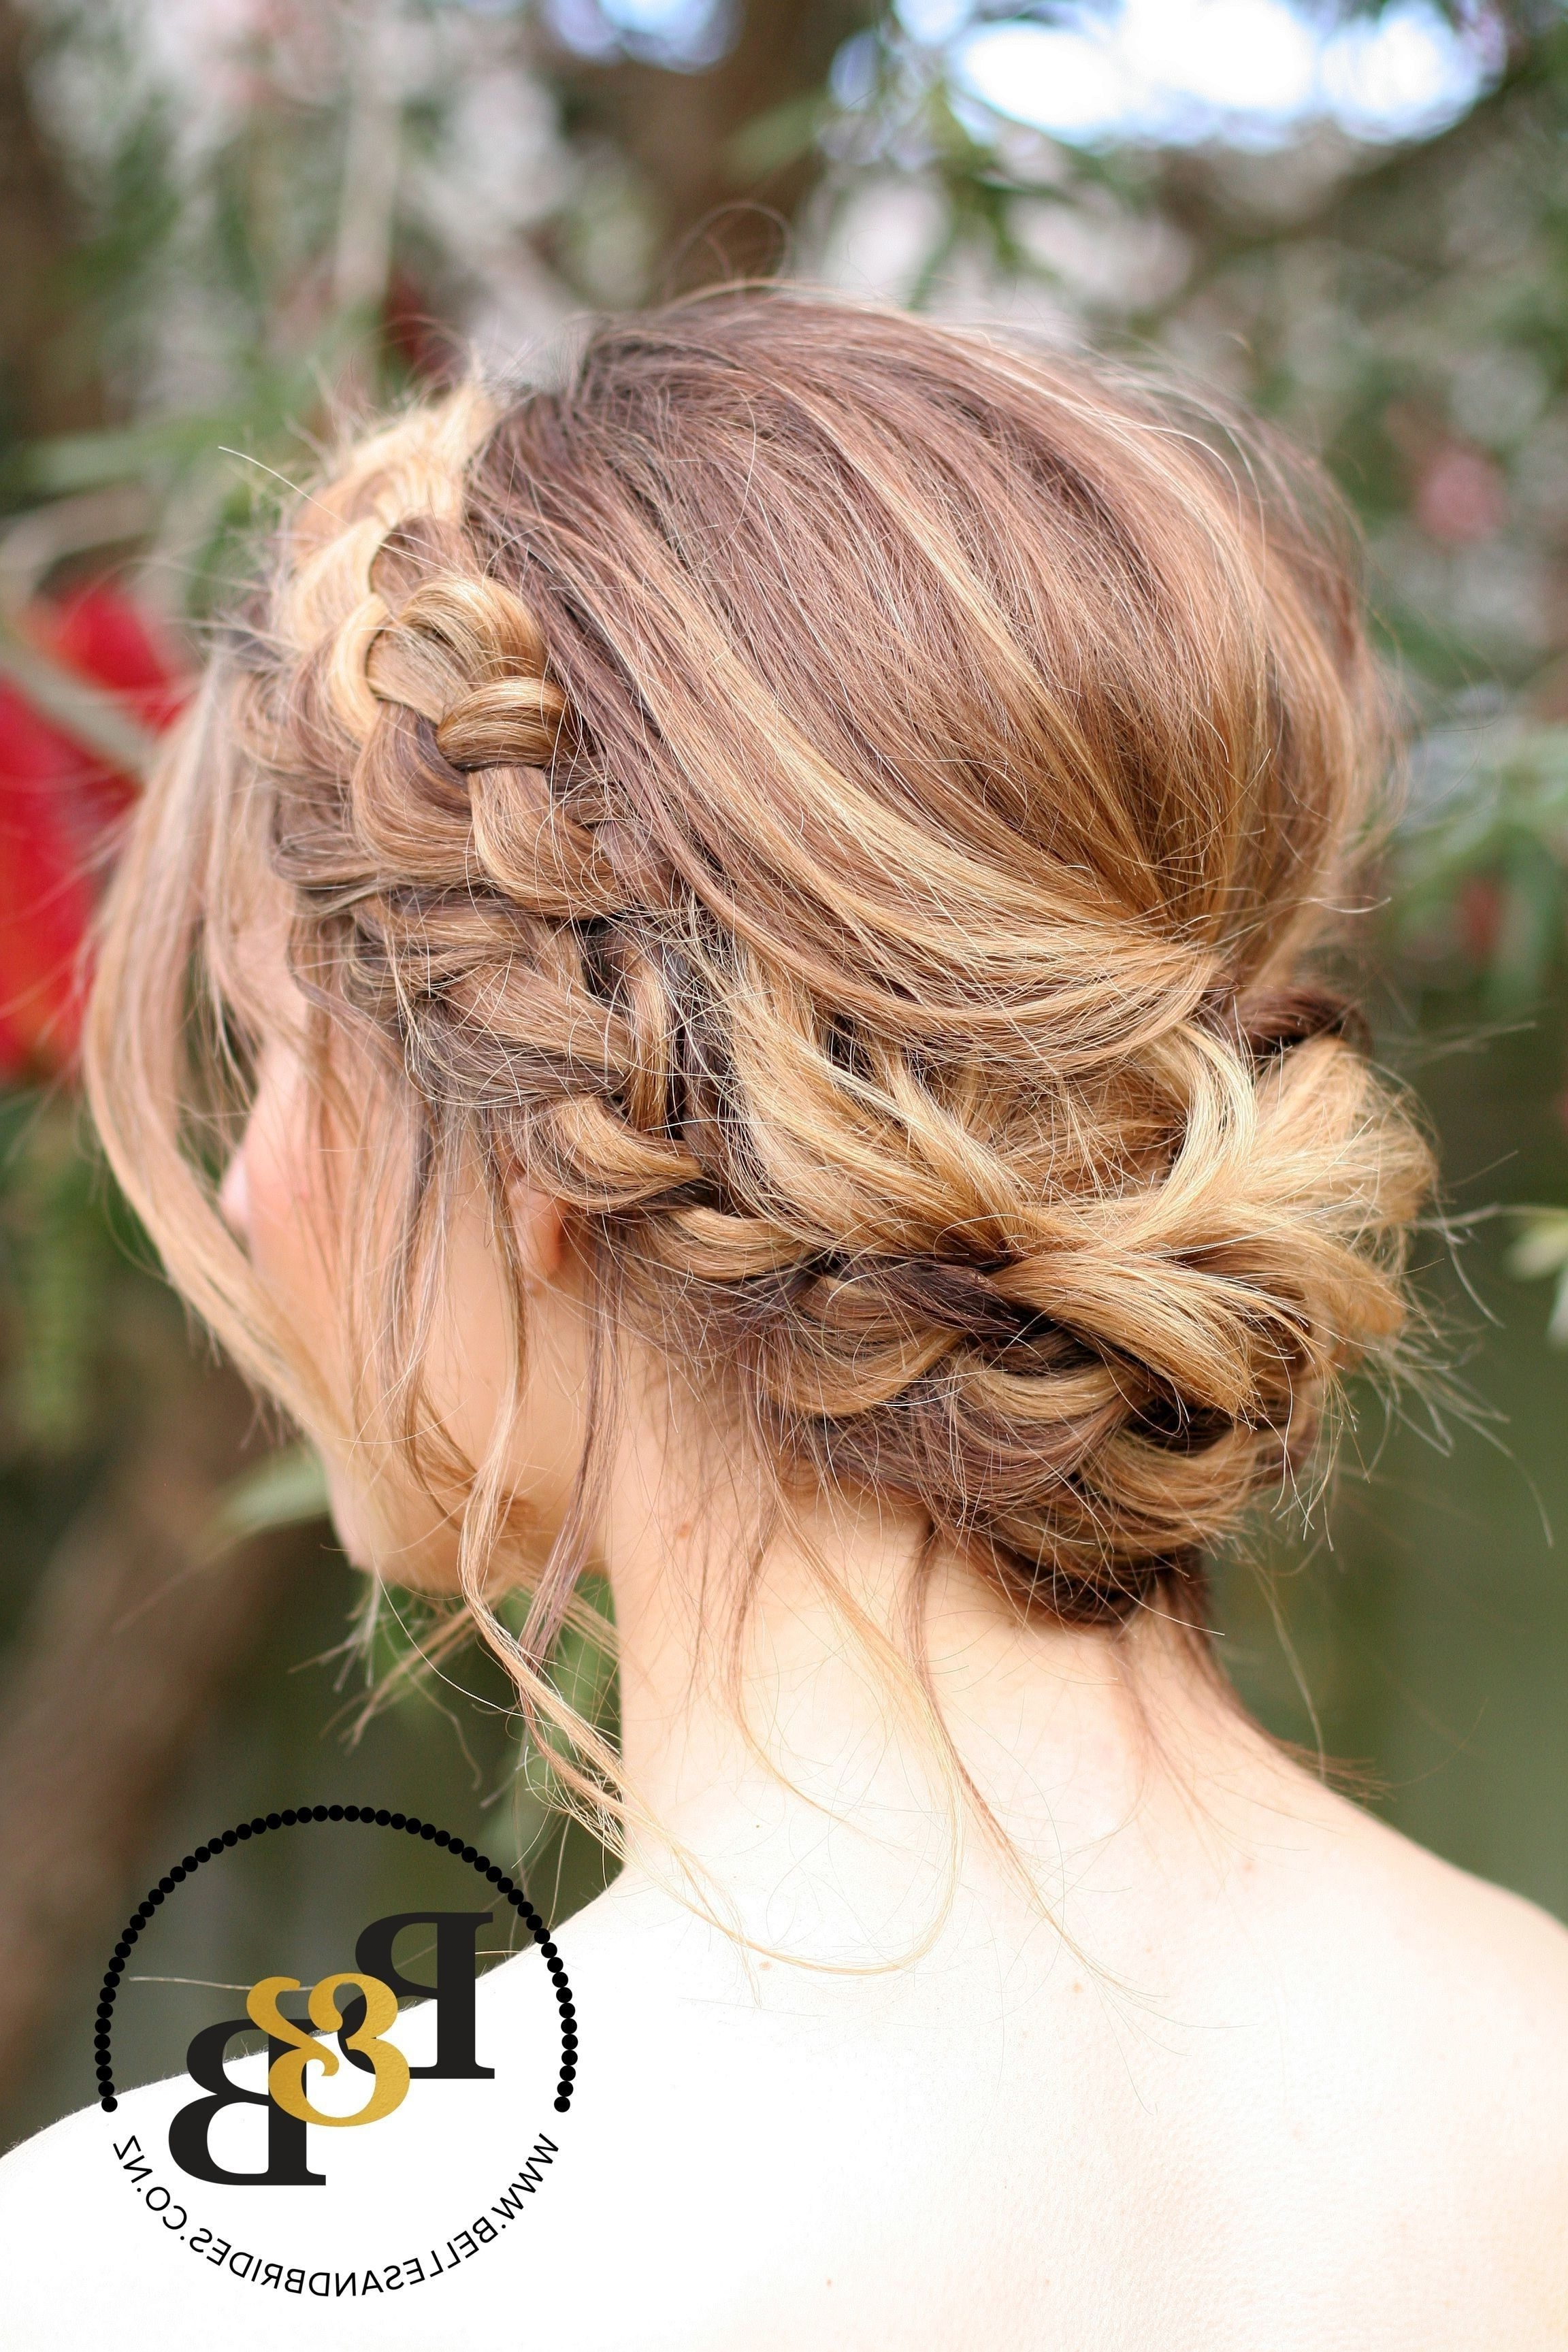 15 Best Collection Of Cute Wedding Hairstyles For Junior Bridesmaids